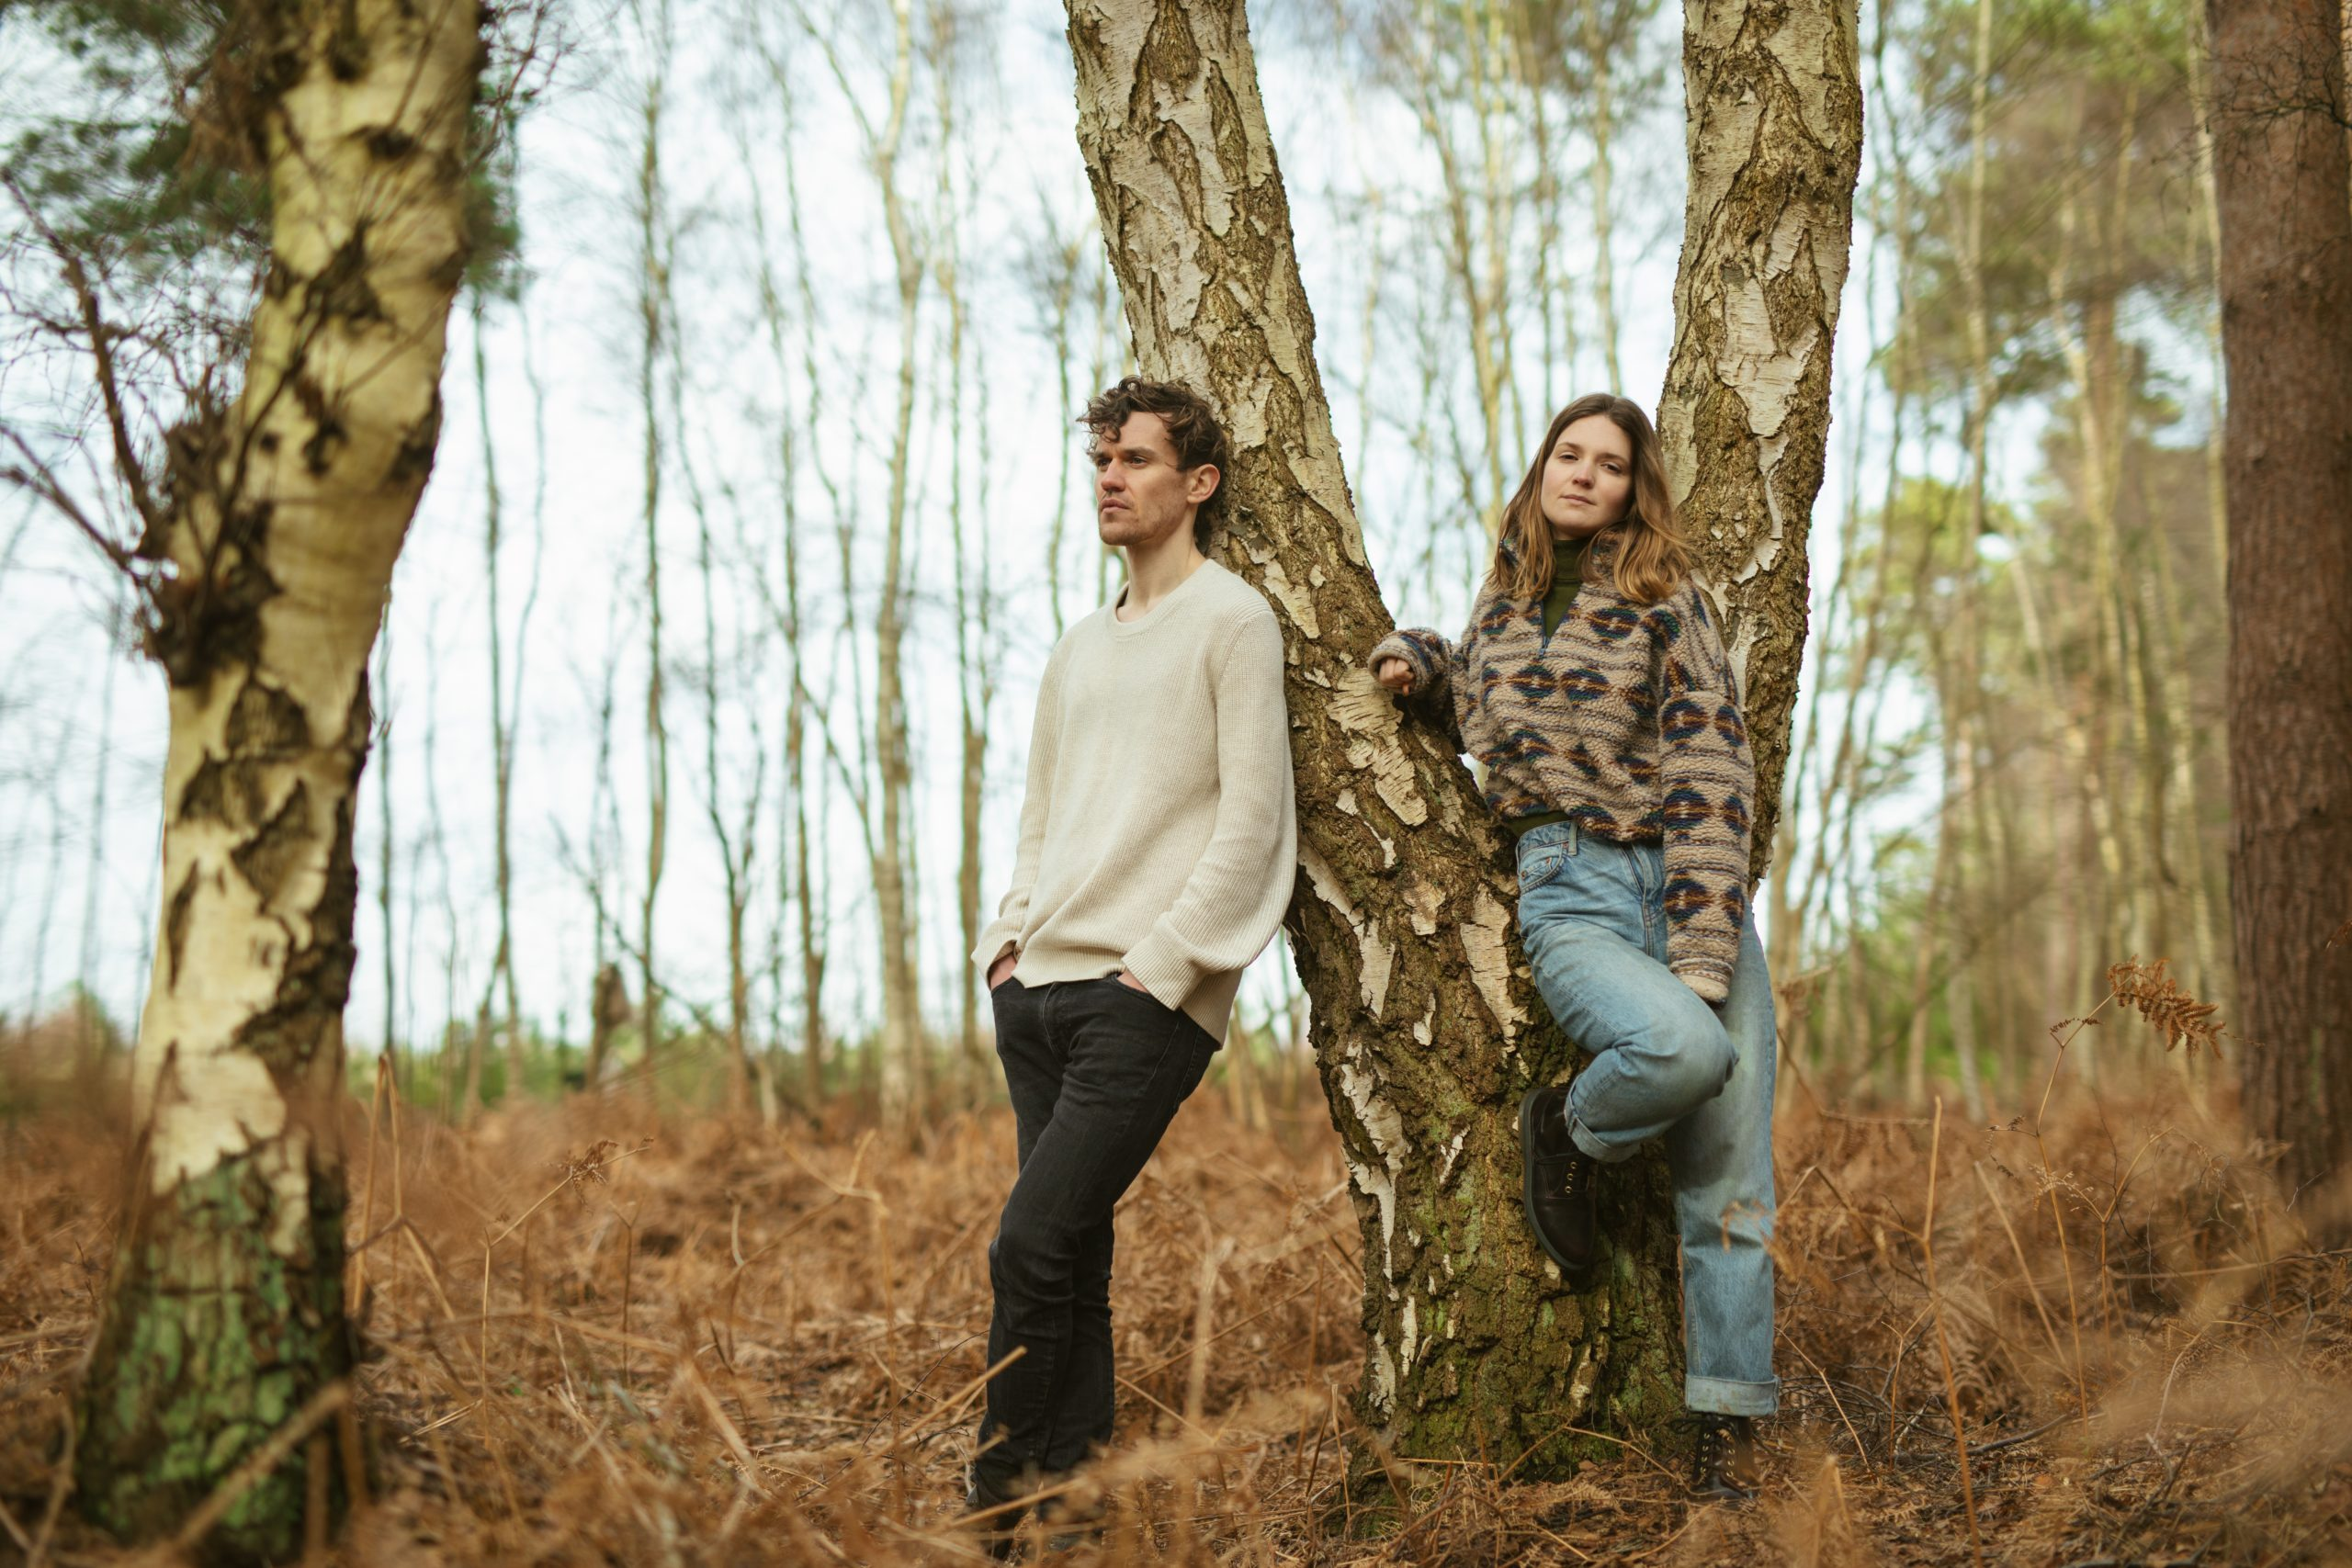 Tommy Ashby and Lydia Clowes press shot.